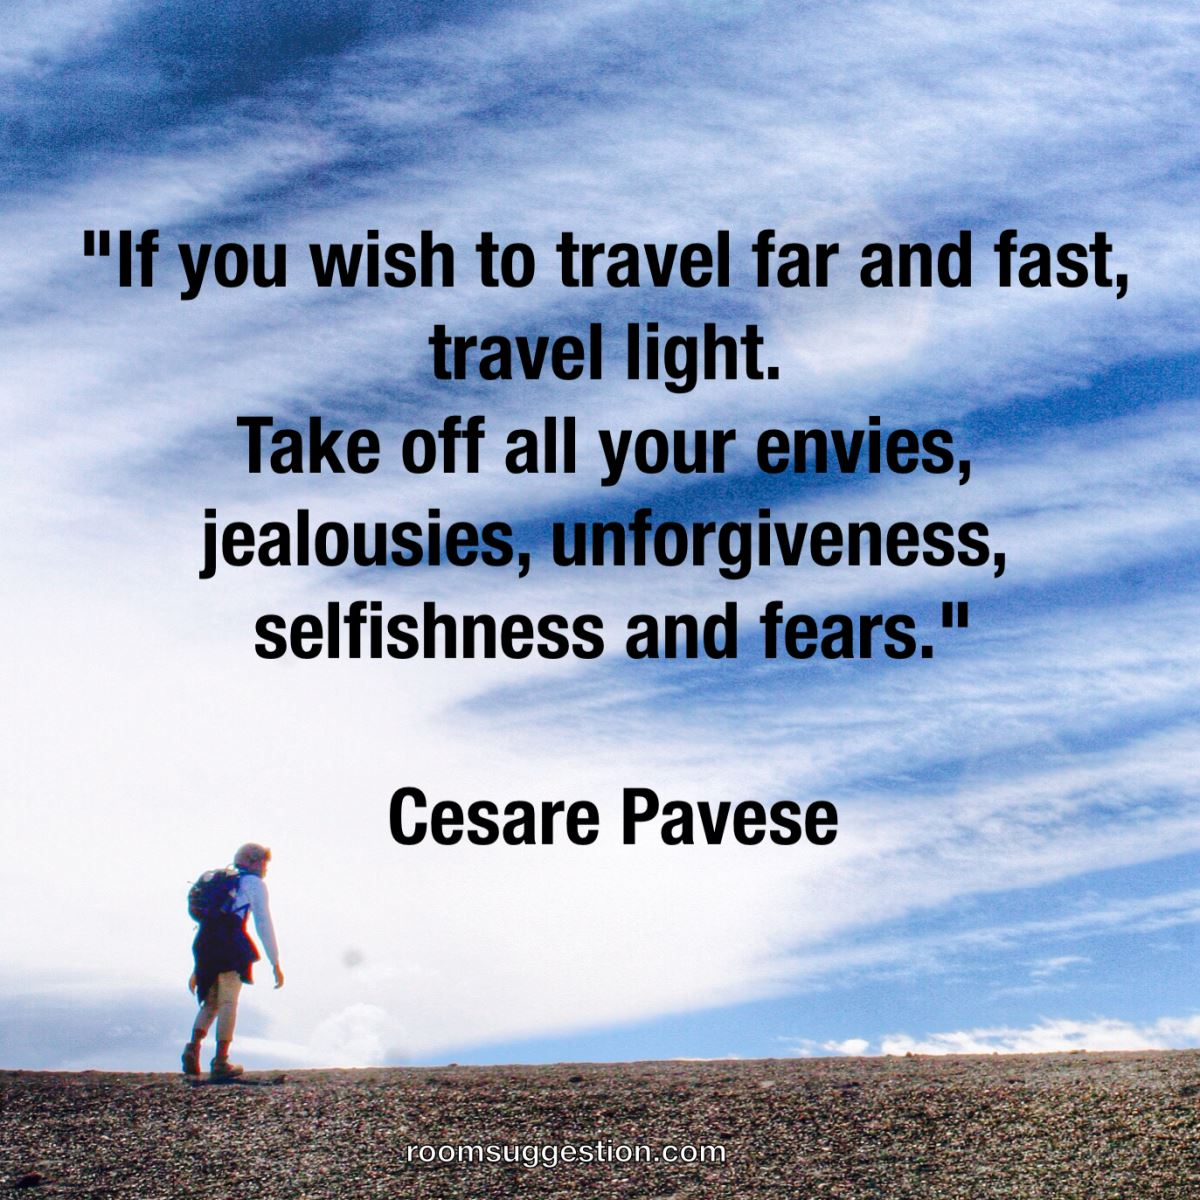 cesare-pavese-travel